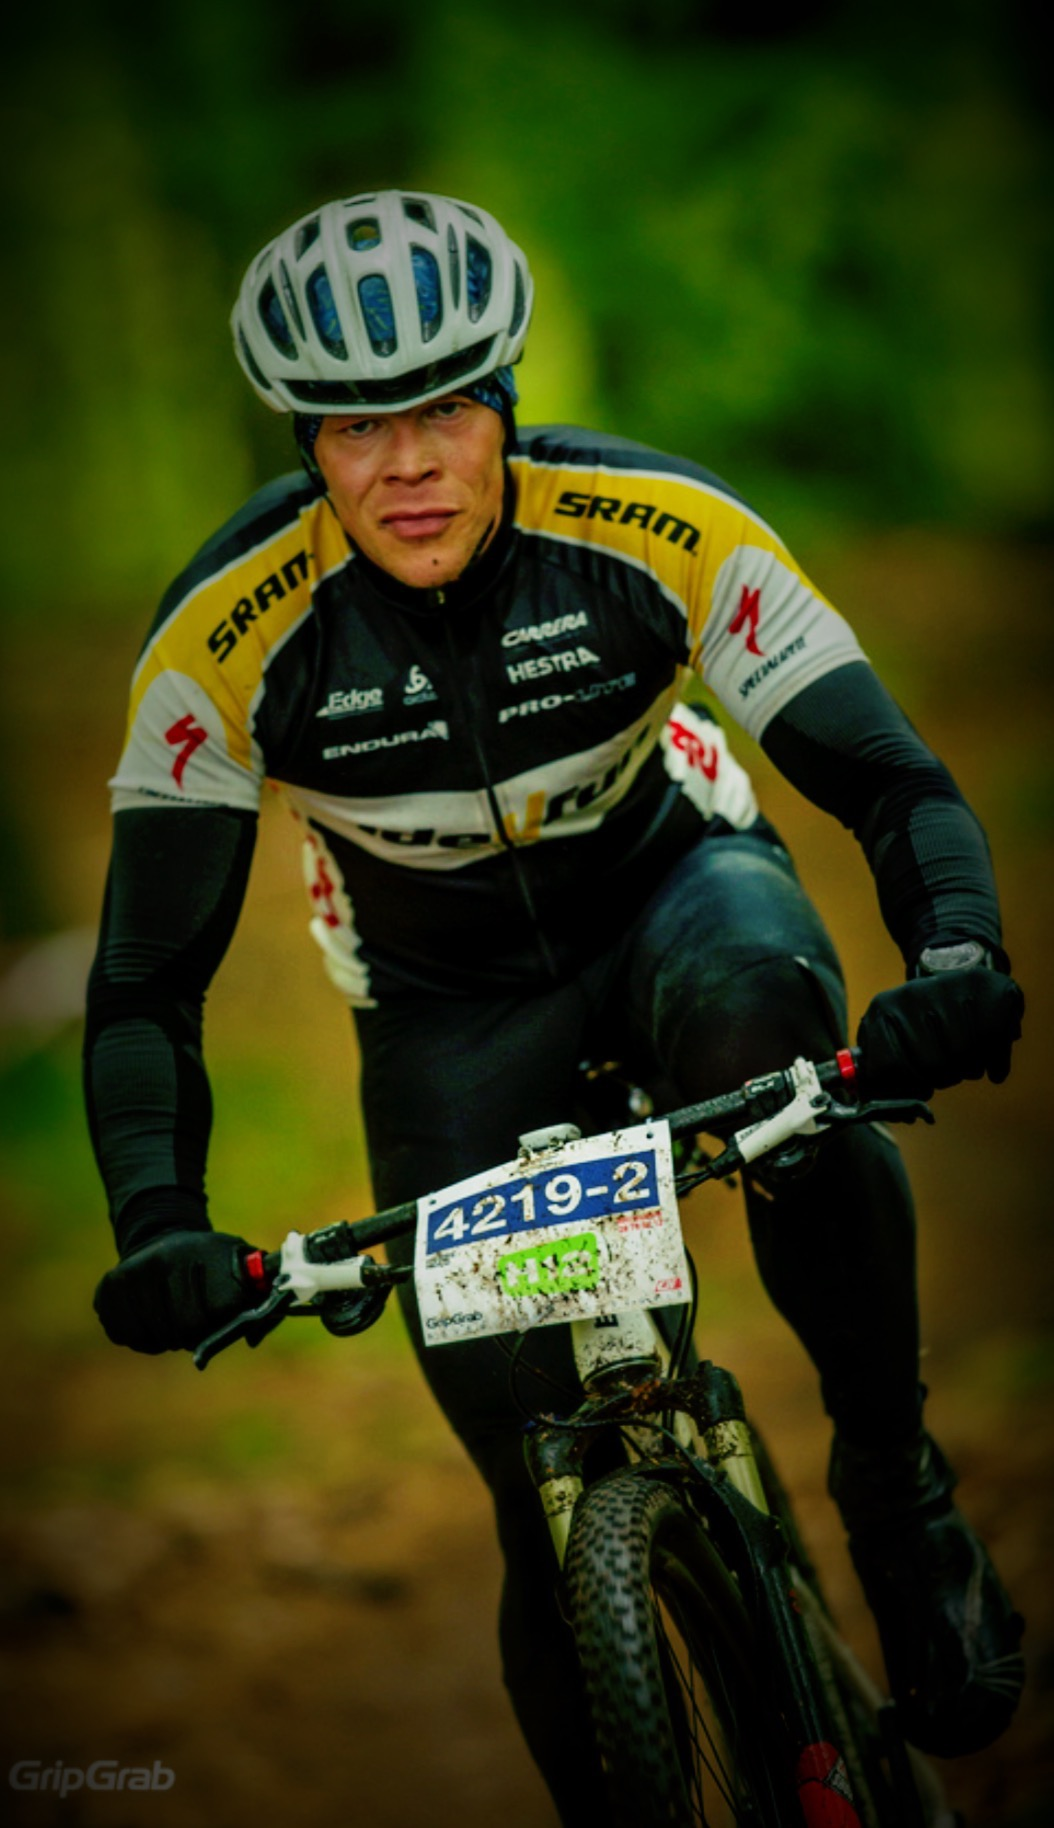 In action @ H12 MTB event